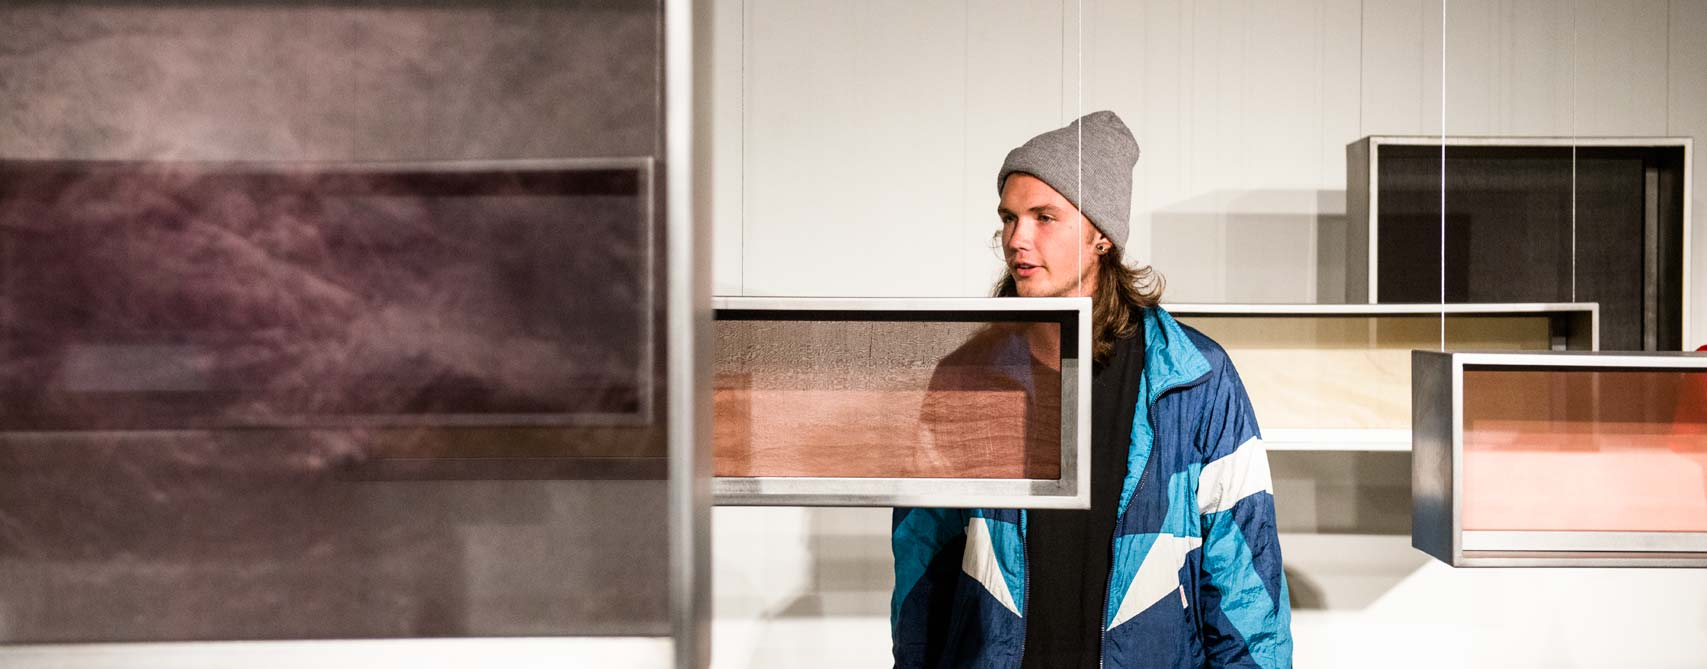 Go beyond majors, classes, and grades and experience your education the way you imagine. Learn more.